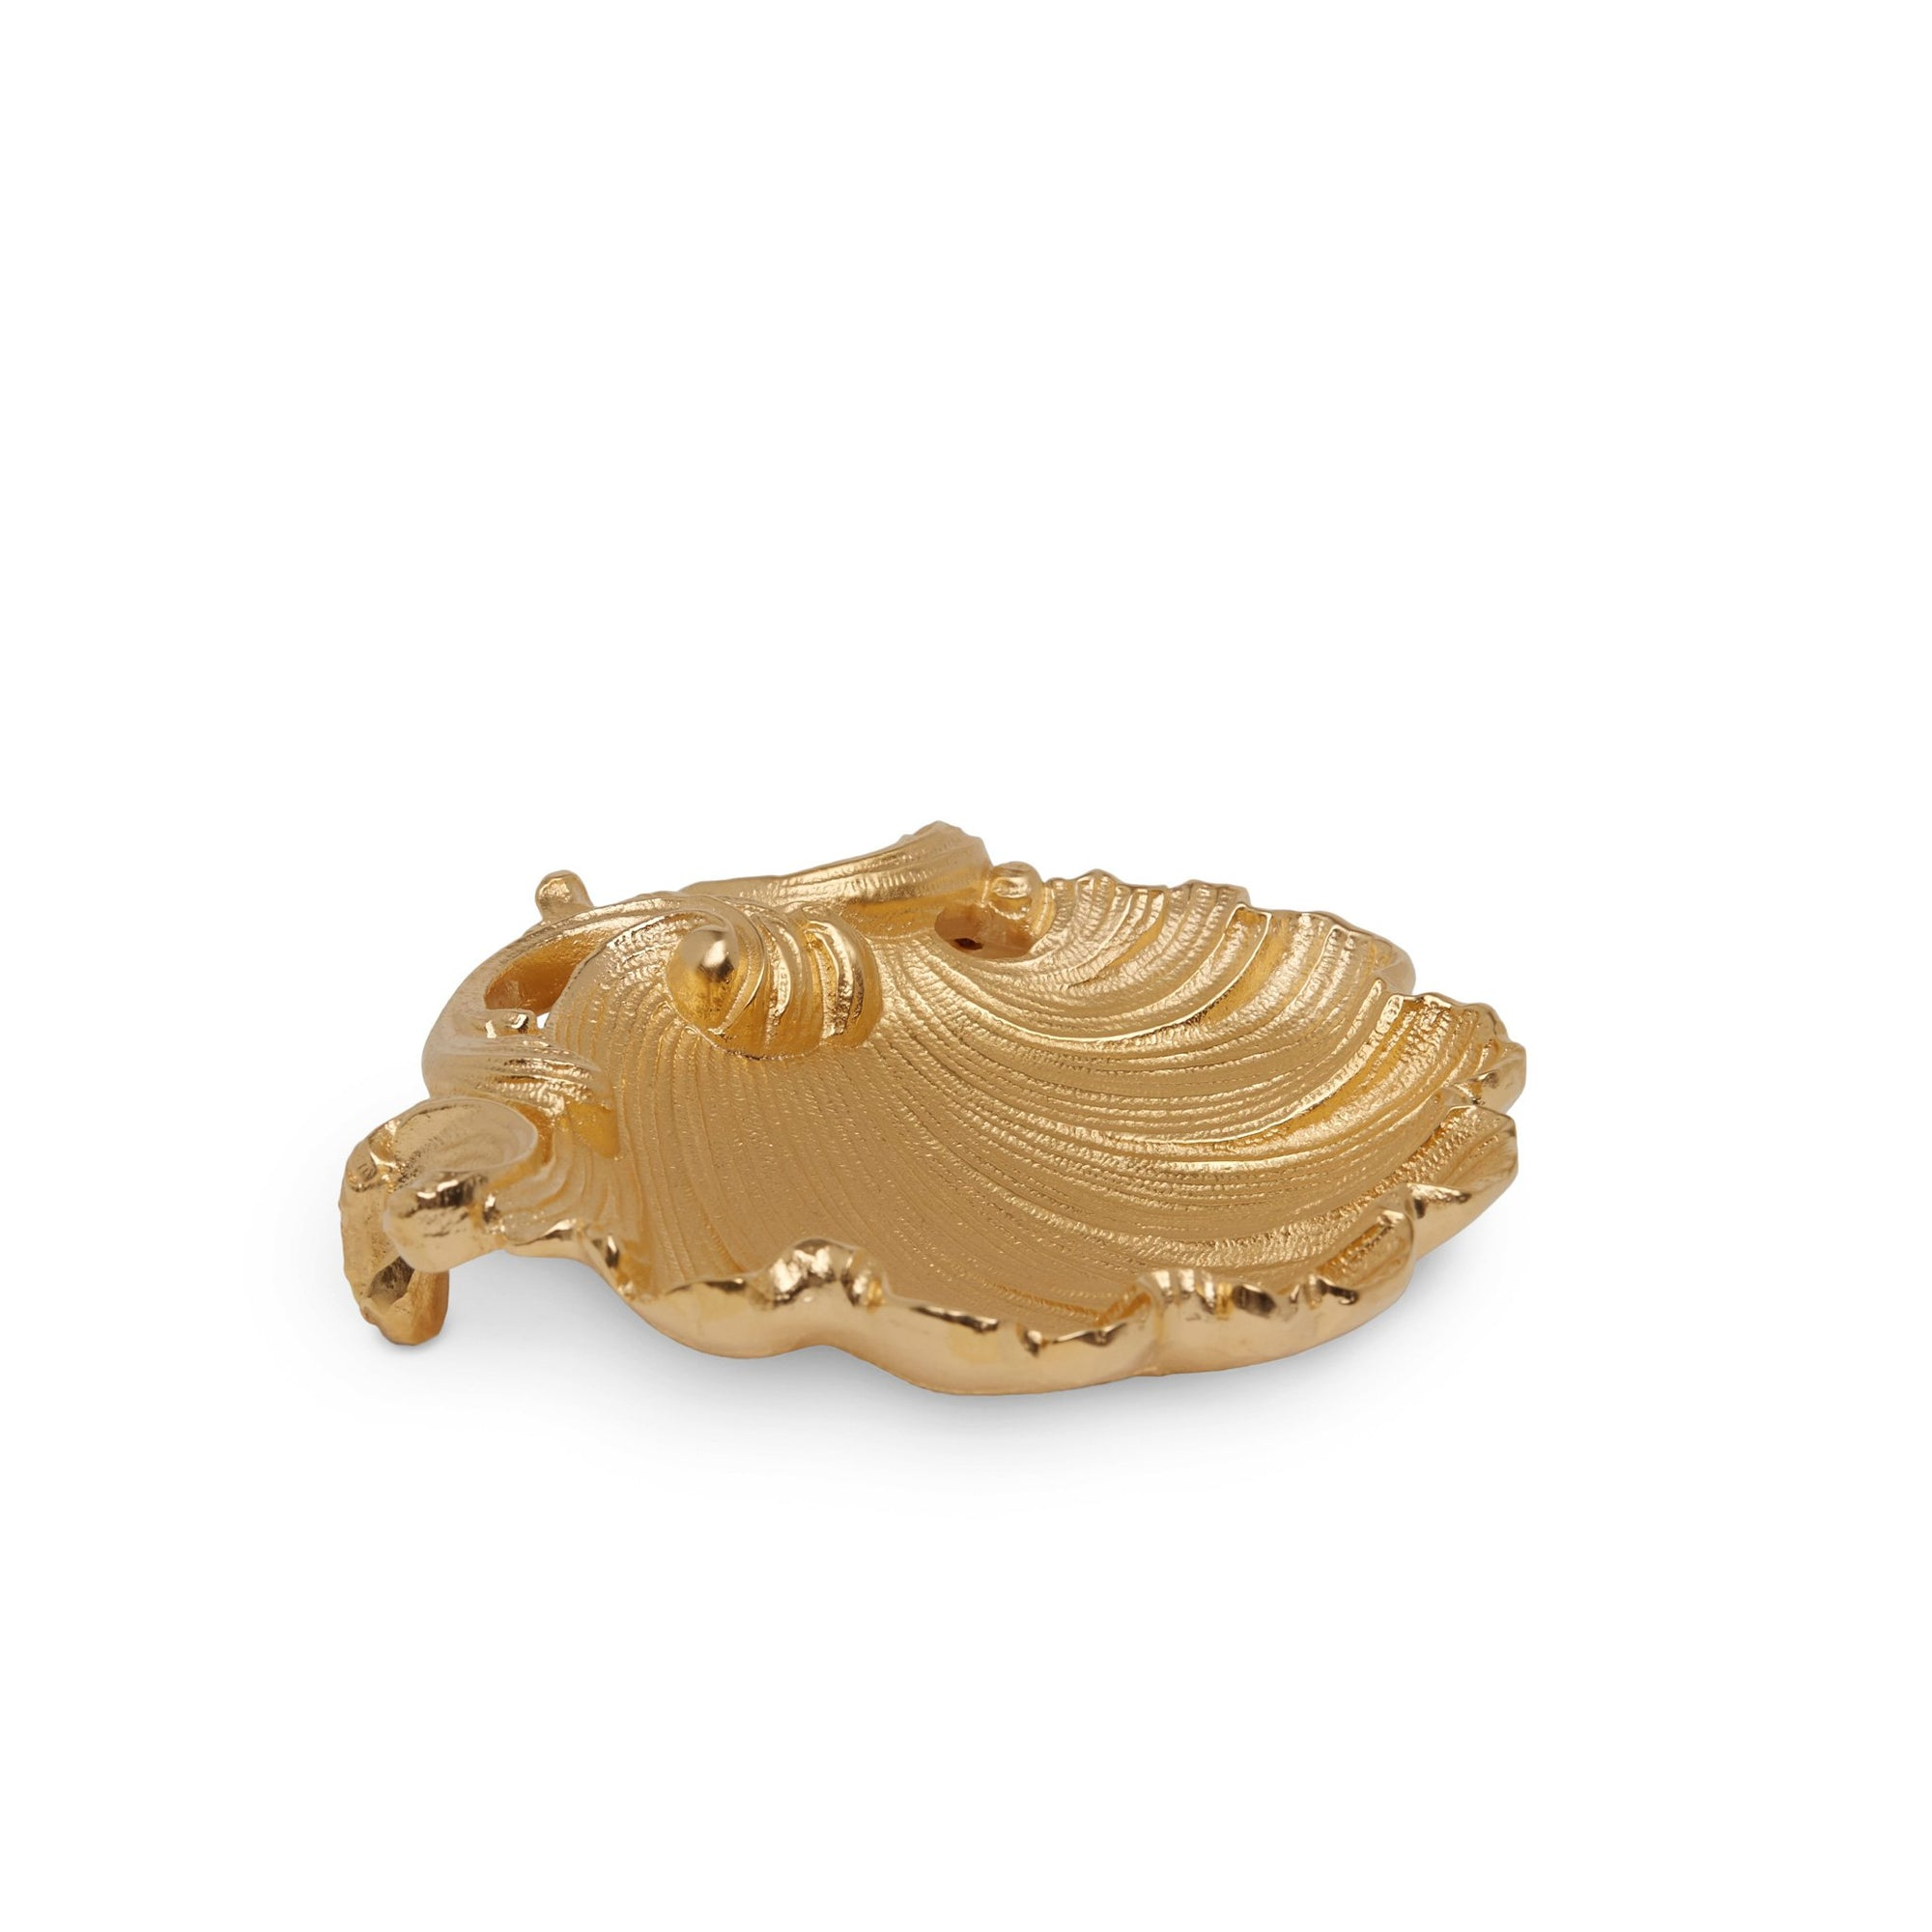 3330-GP Sherle Wagner International Rococo Shell Soap Dish in Gold Plate